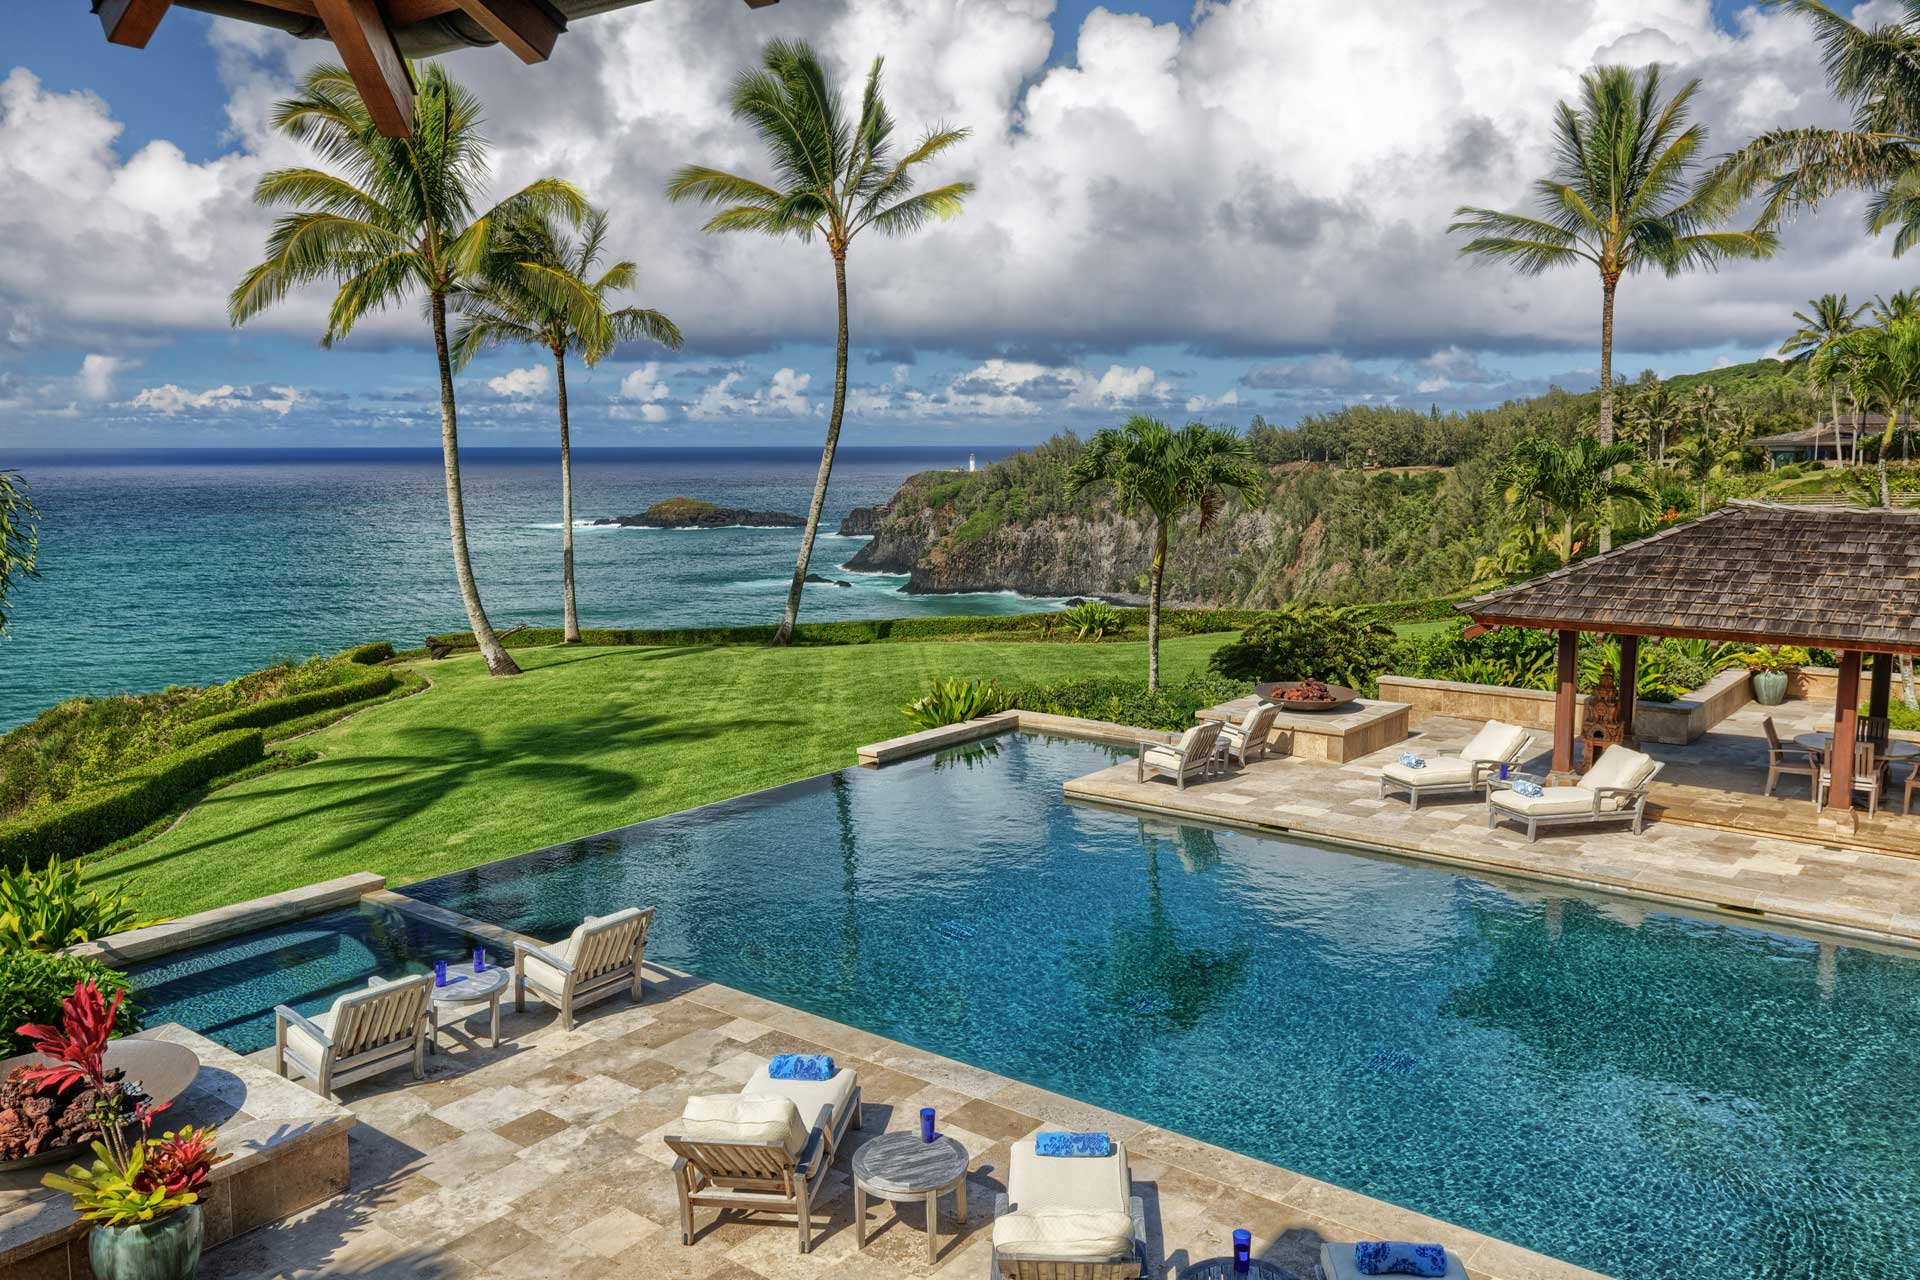 Best Vacation Rental Websites to Advertise